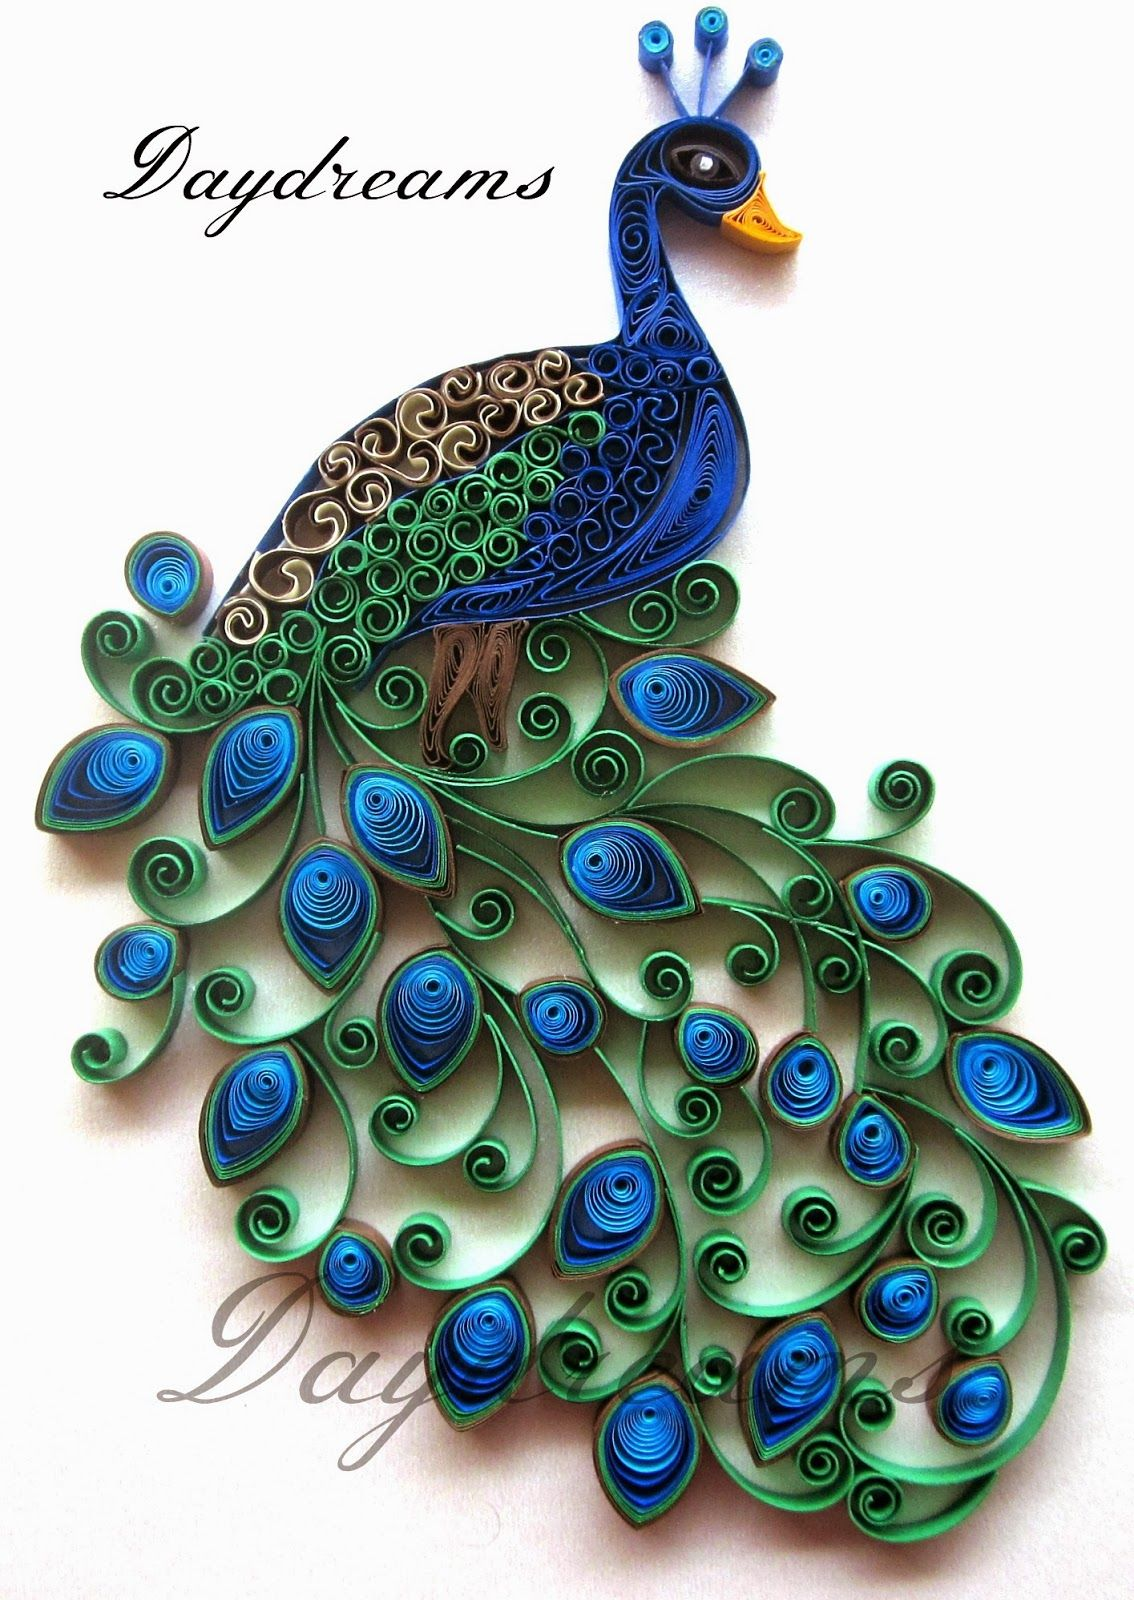 Daydreams quilled peacock embroidery design inspired for Paper quilling art projects